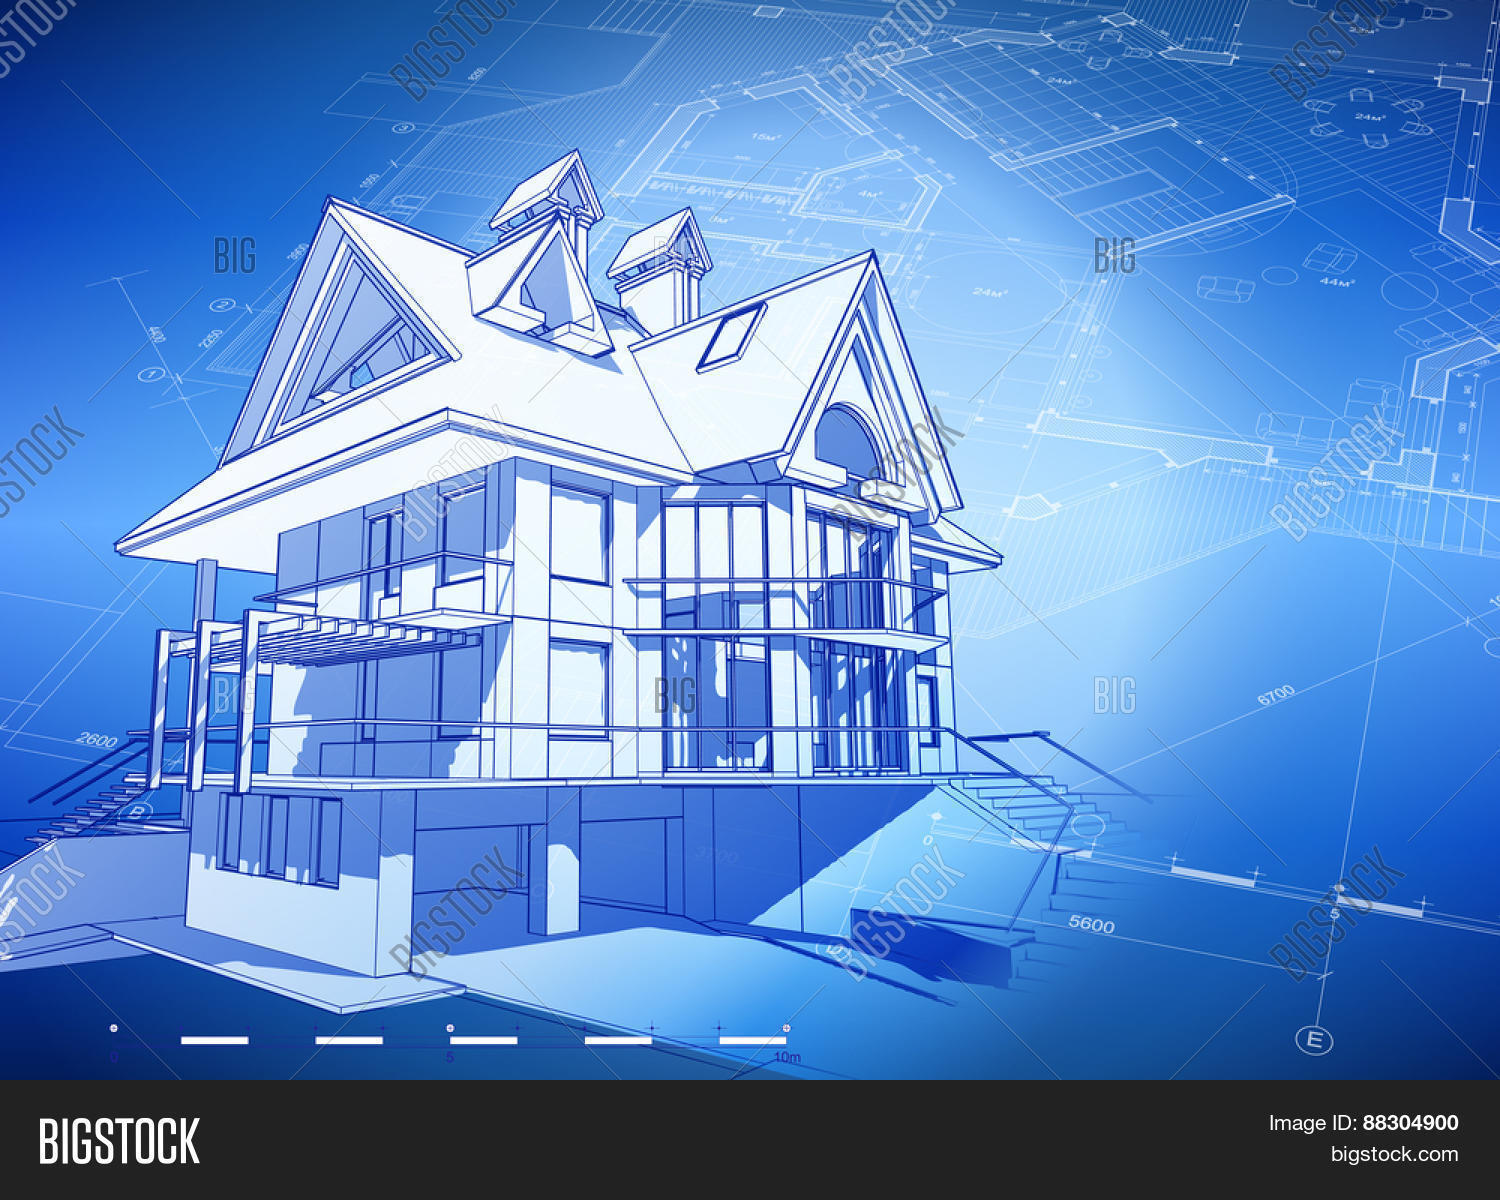 Architecture design blueprint 3d vector photo bigstock for Architecture design blueprint